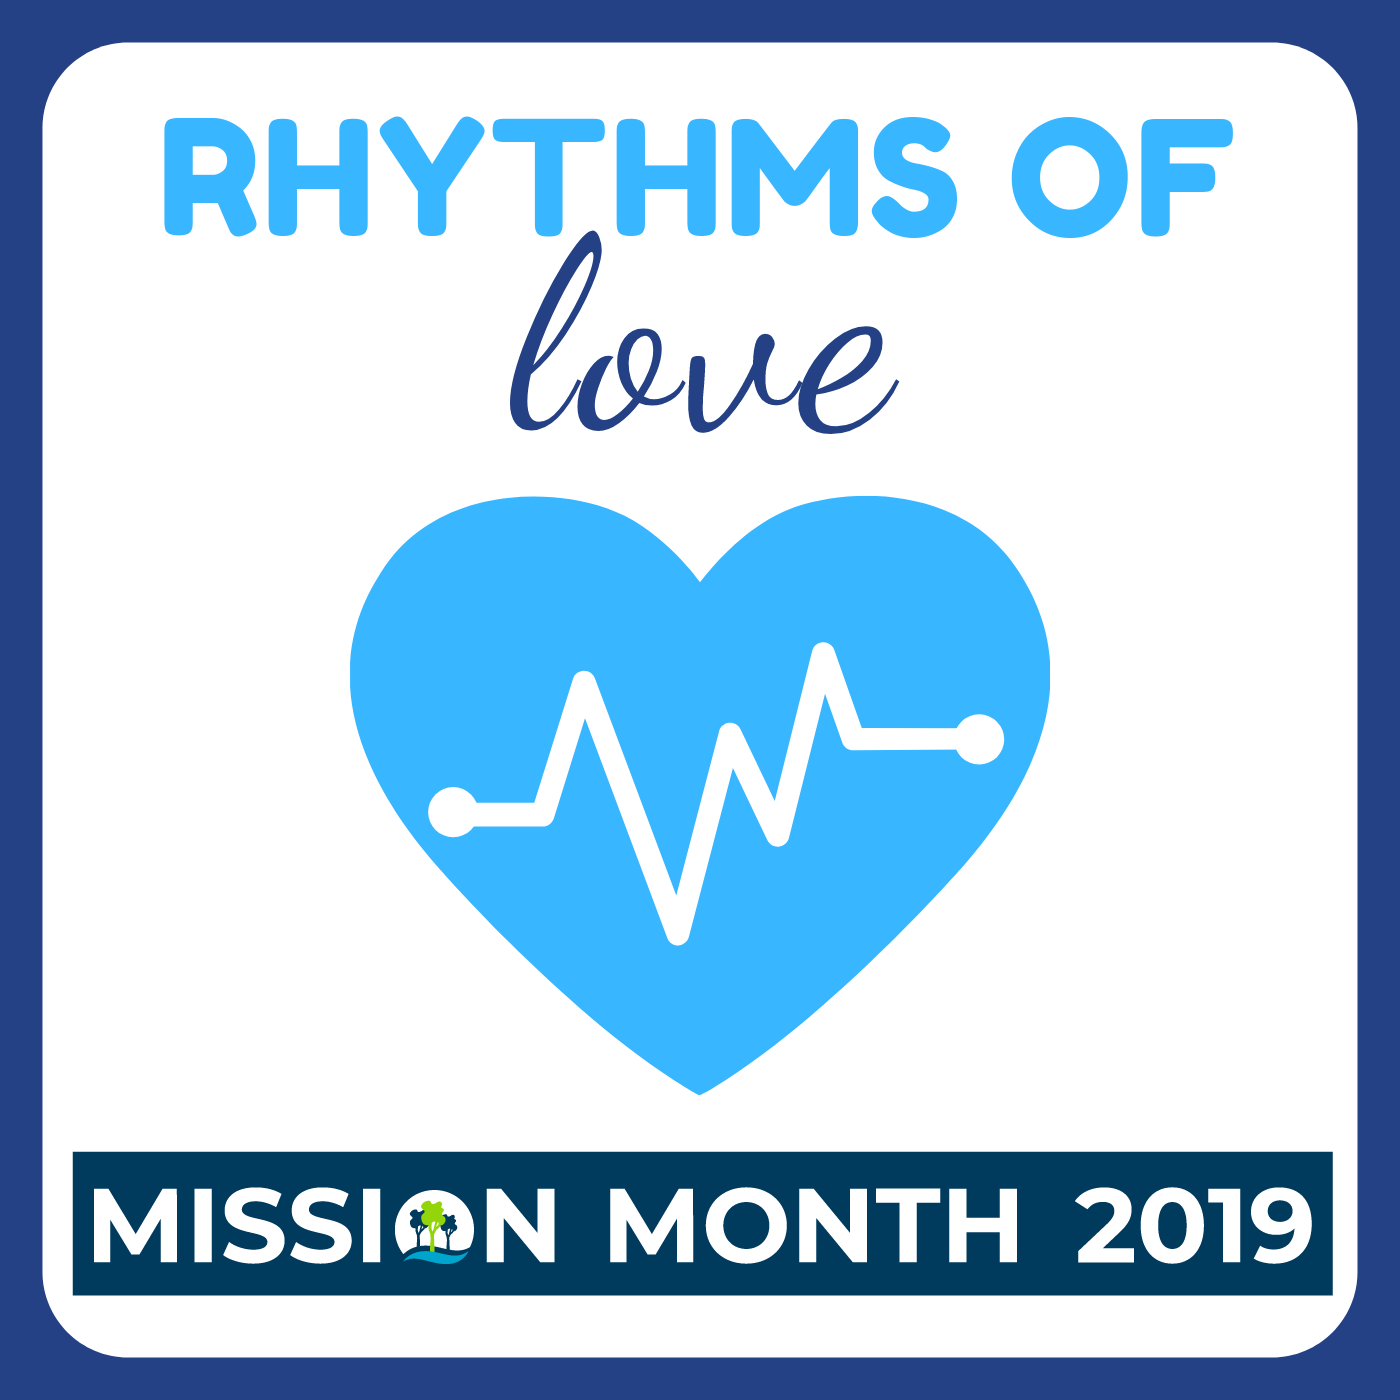 Mission Month - Rhythms of Love - 5 May